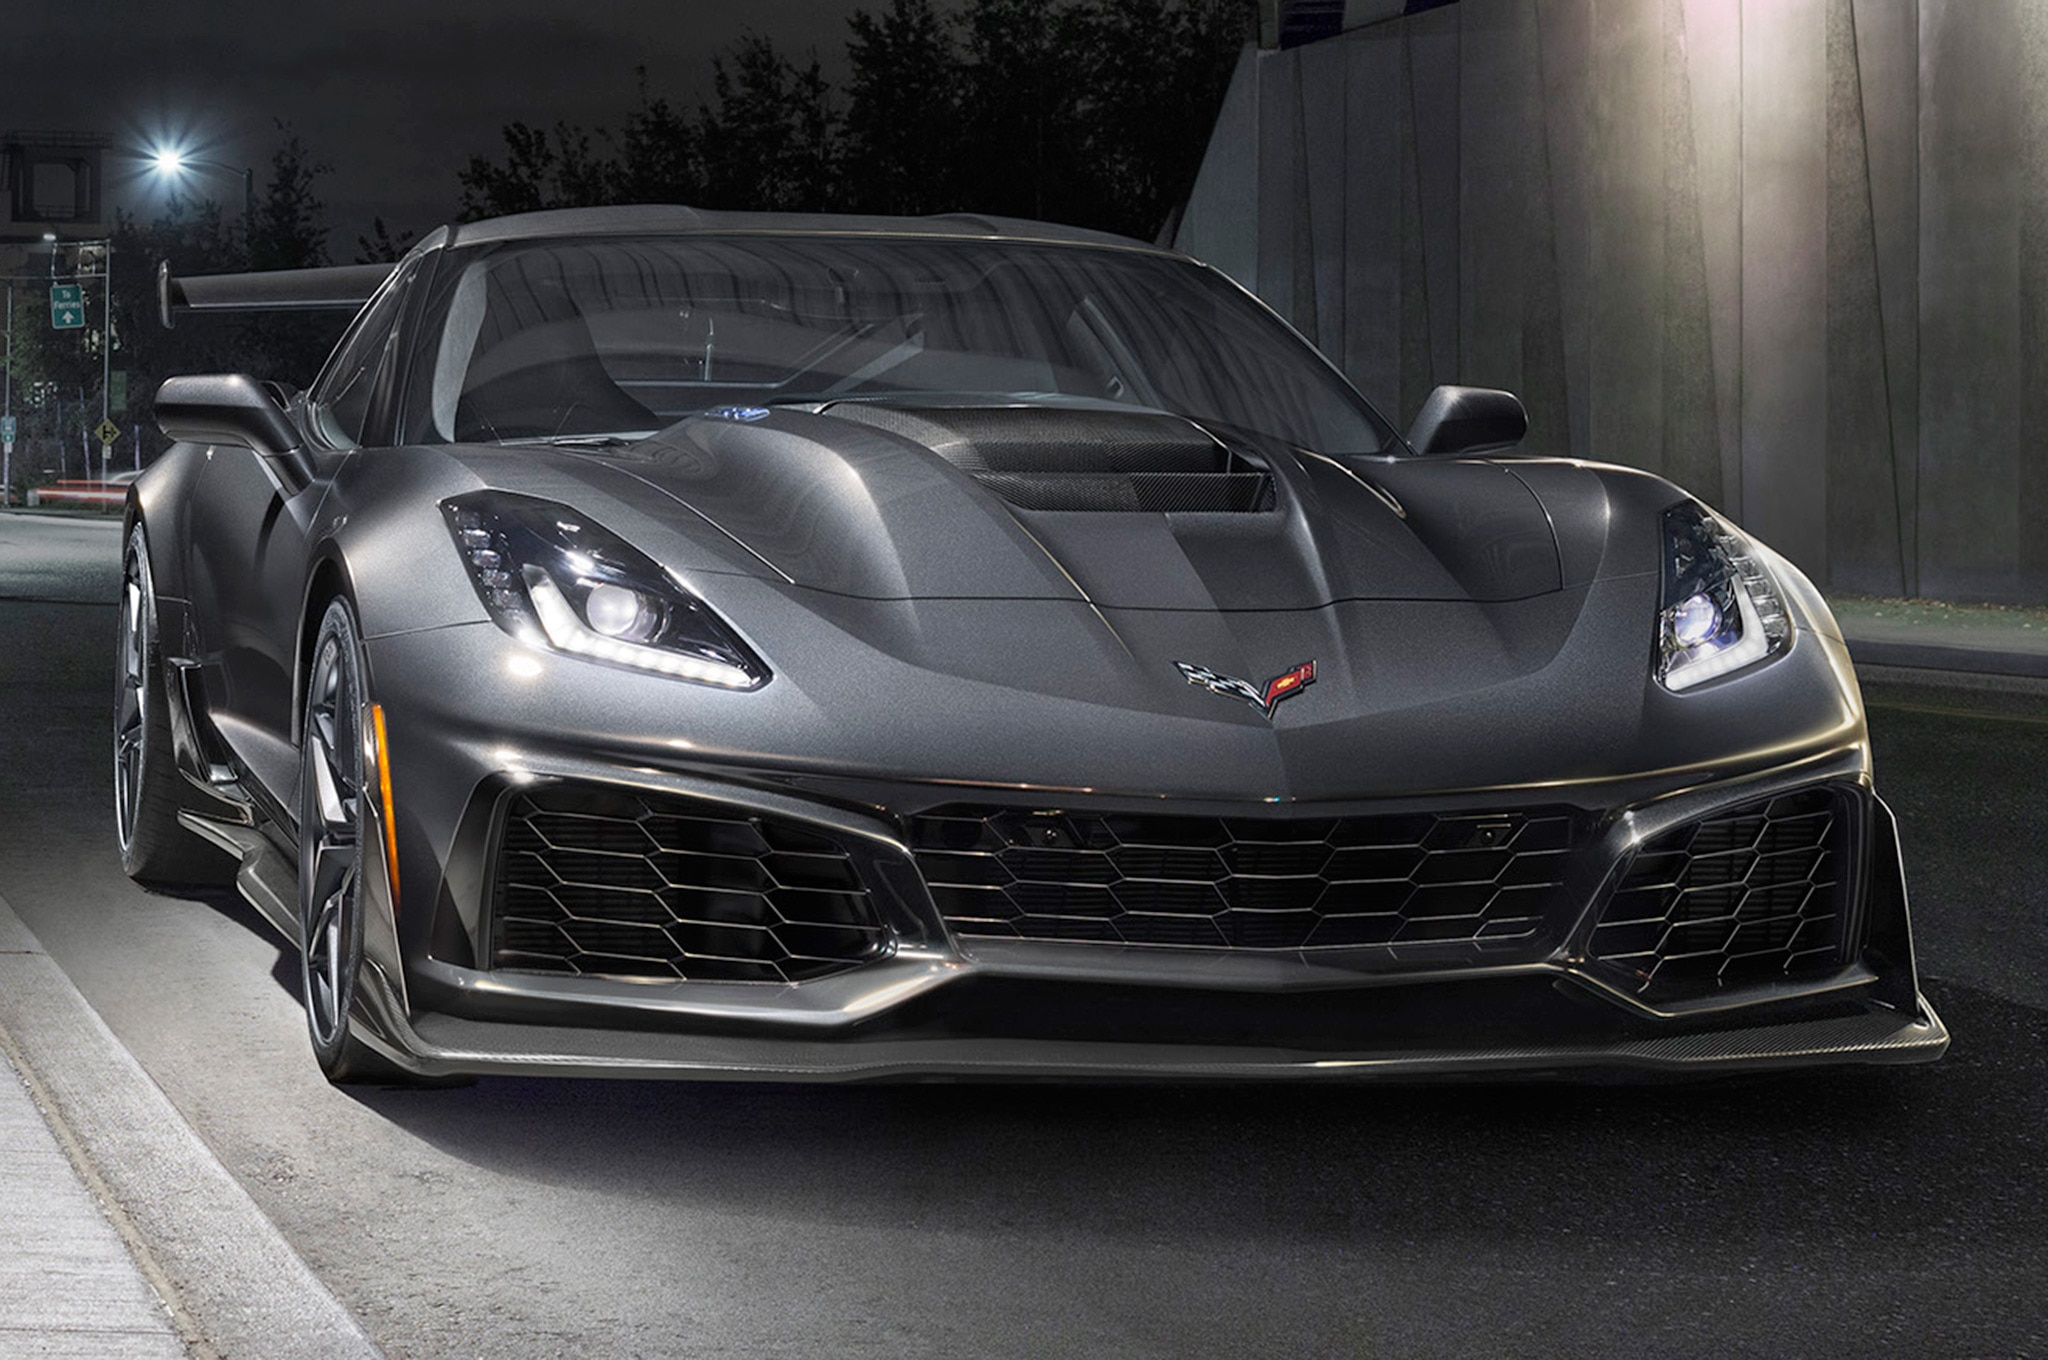 Chevrolet Corvette ZR1 revealed 563kW supercharged supercar is fastest Corvette ever